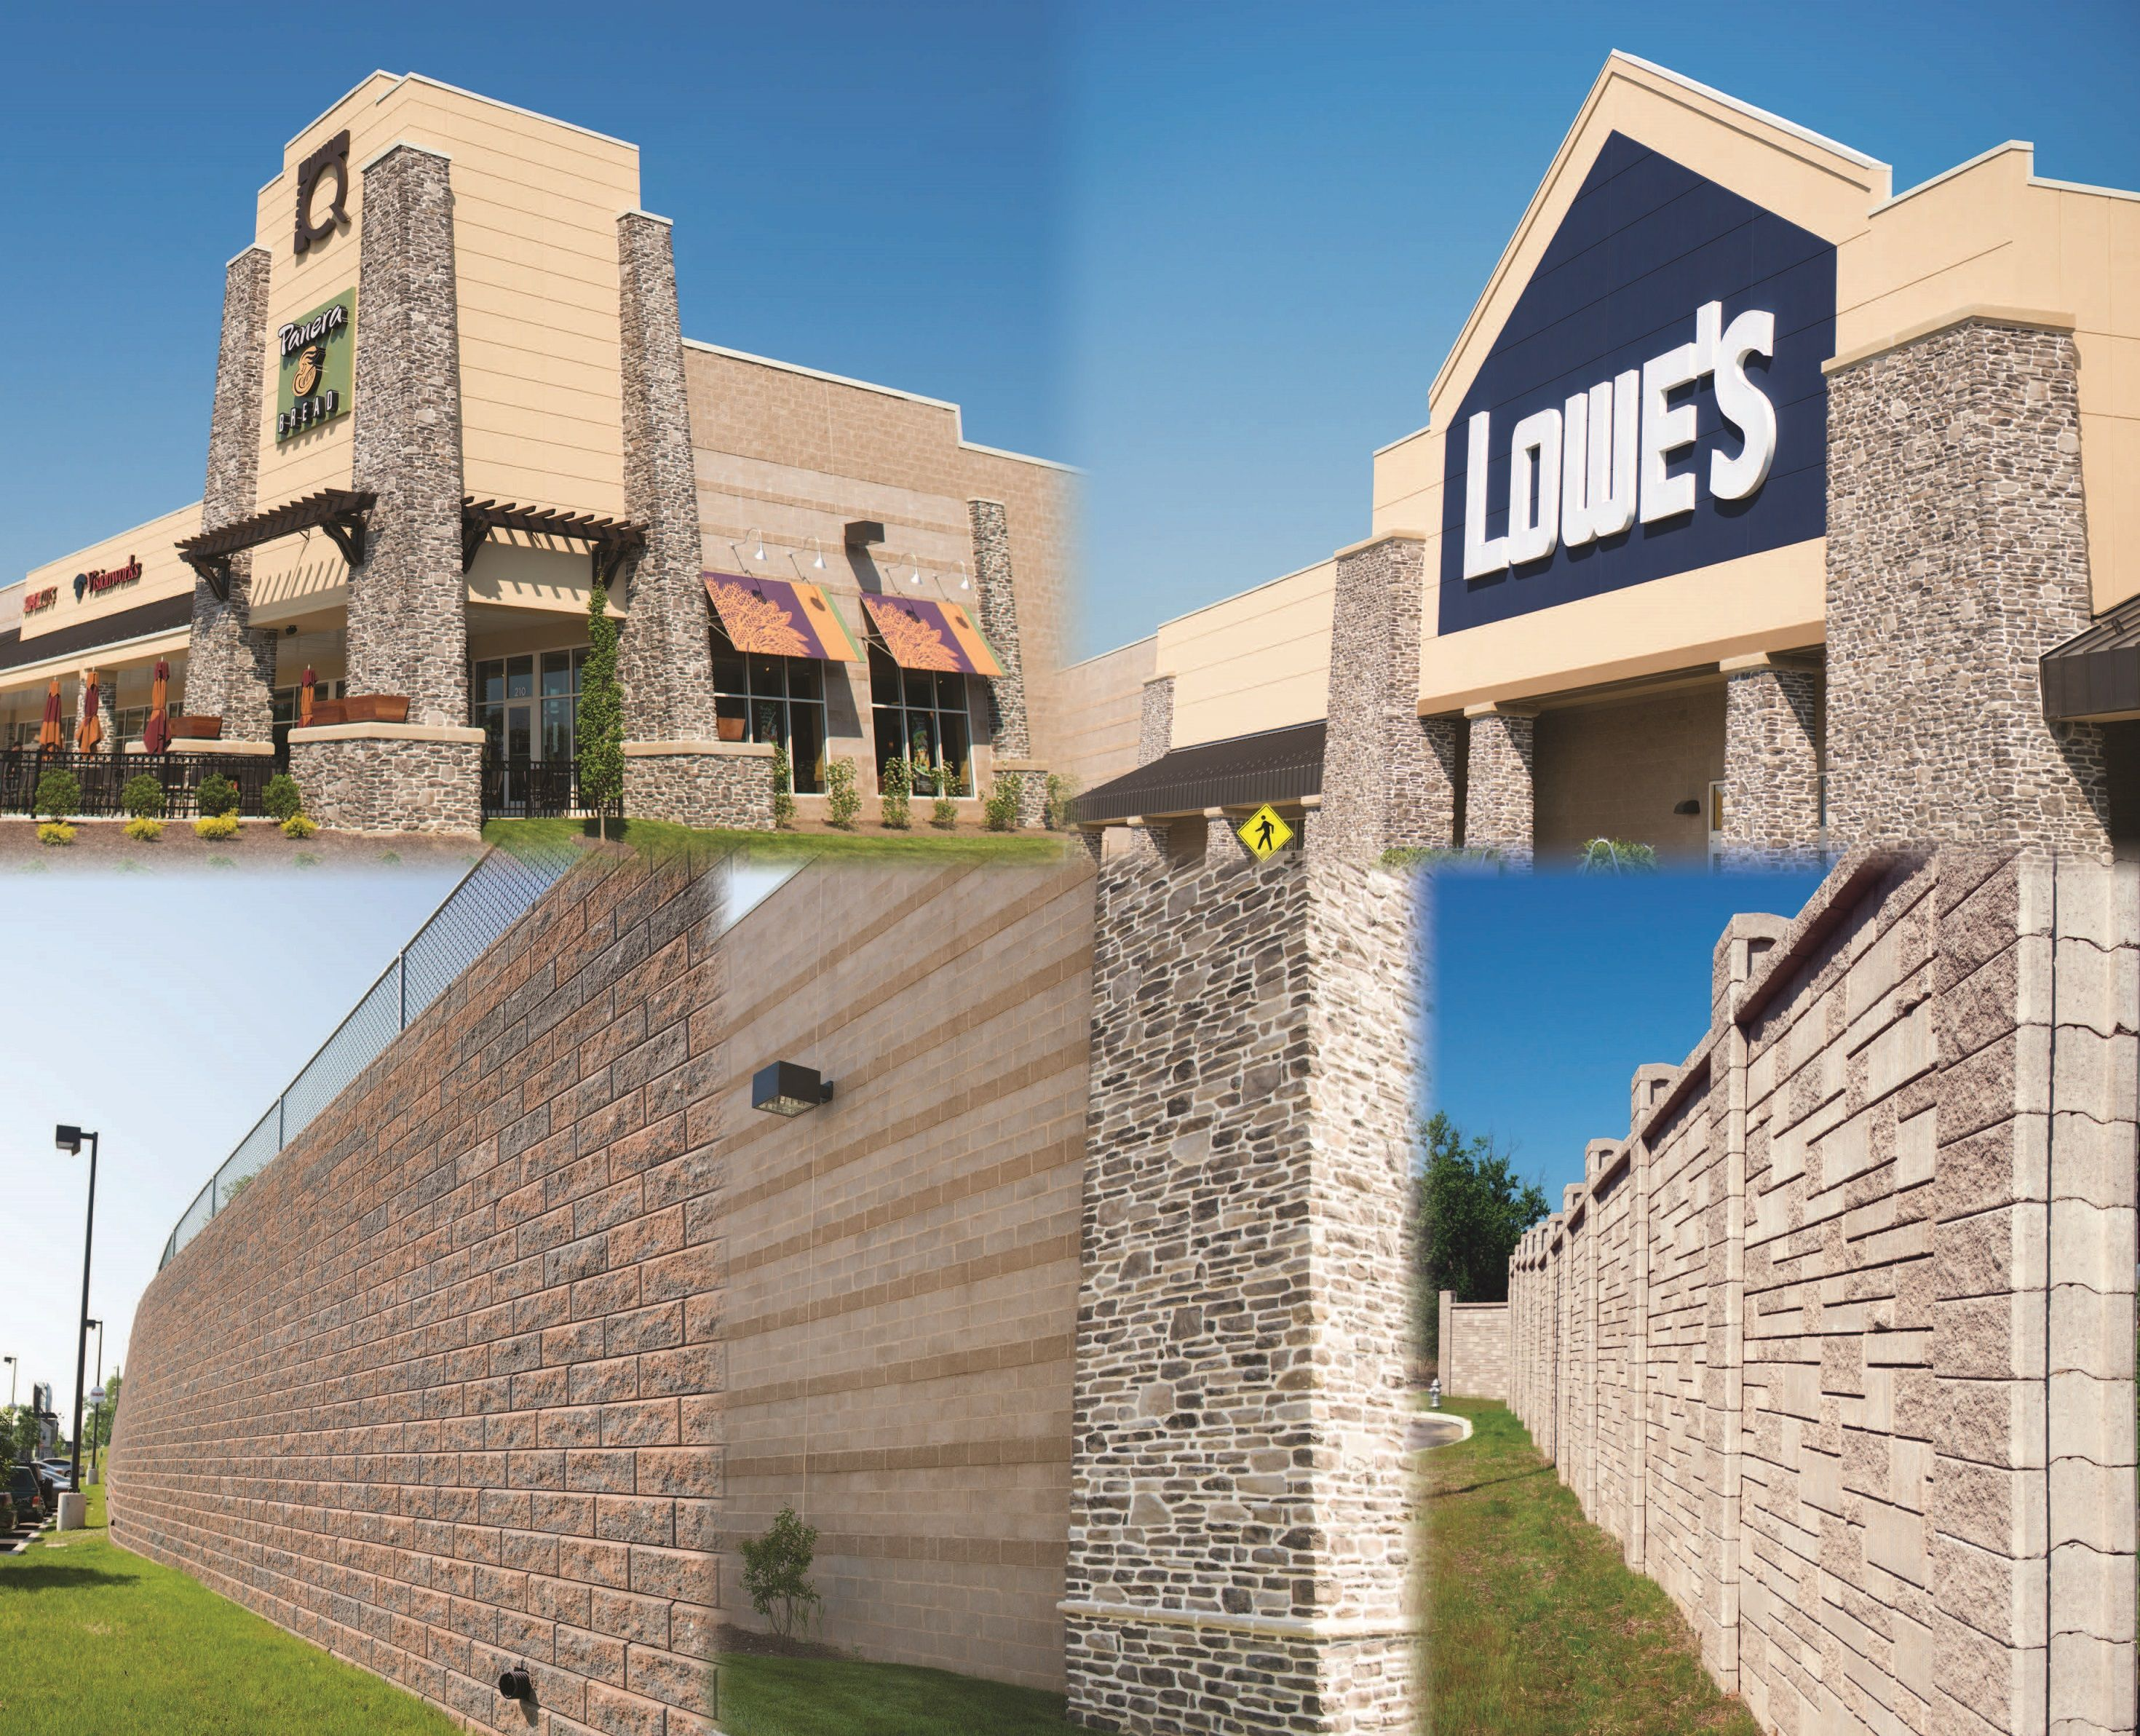 quarry center havertown pennsylvania split face and ground face concrete masonry units - Masonry Block Wall Design